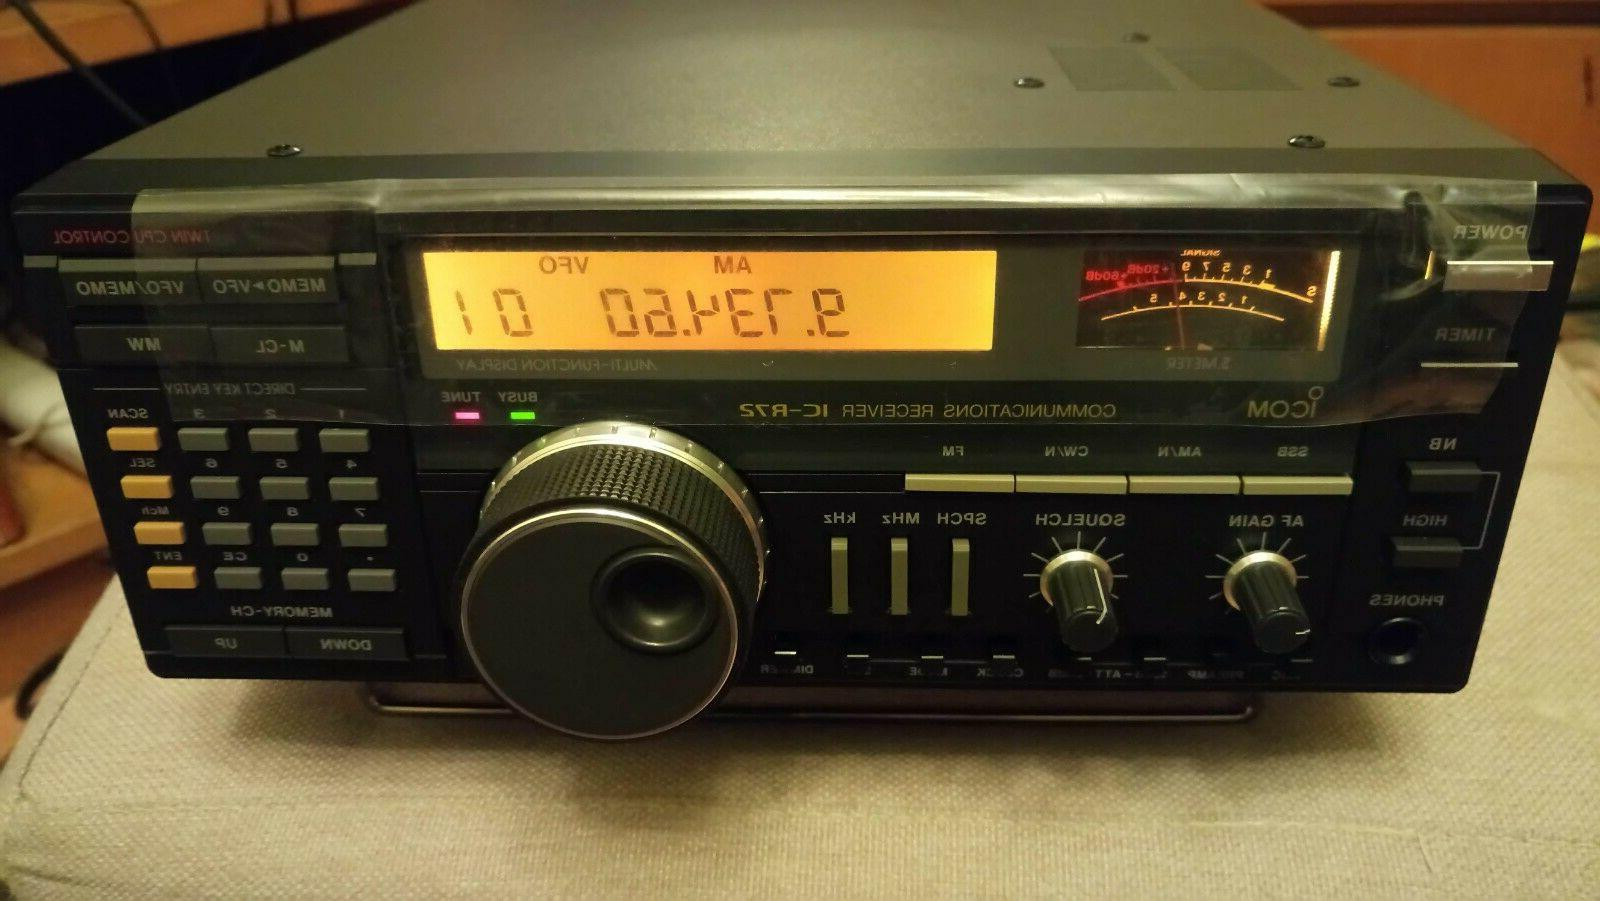 brand new old stock r72 dc hf